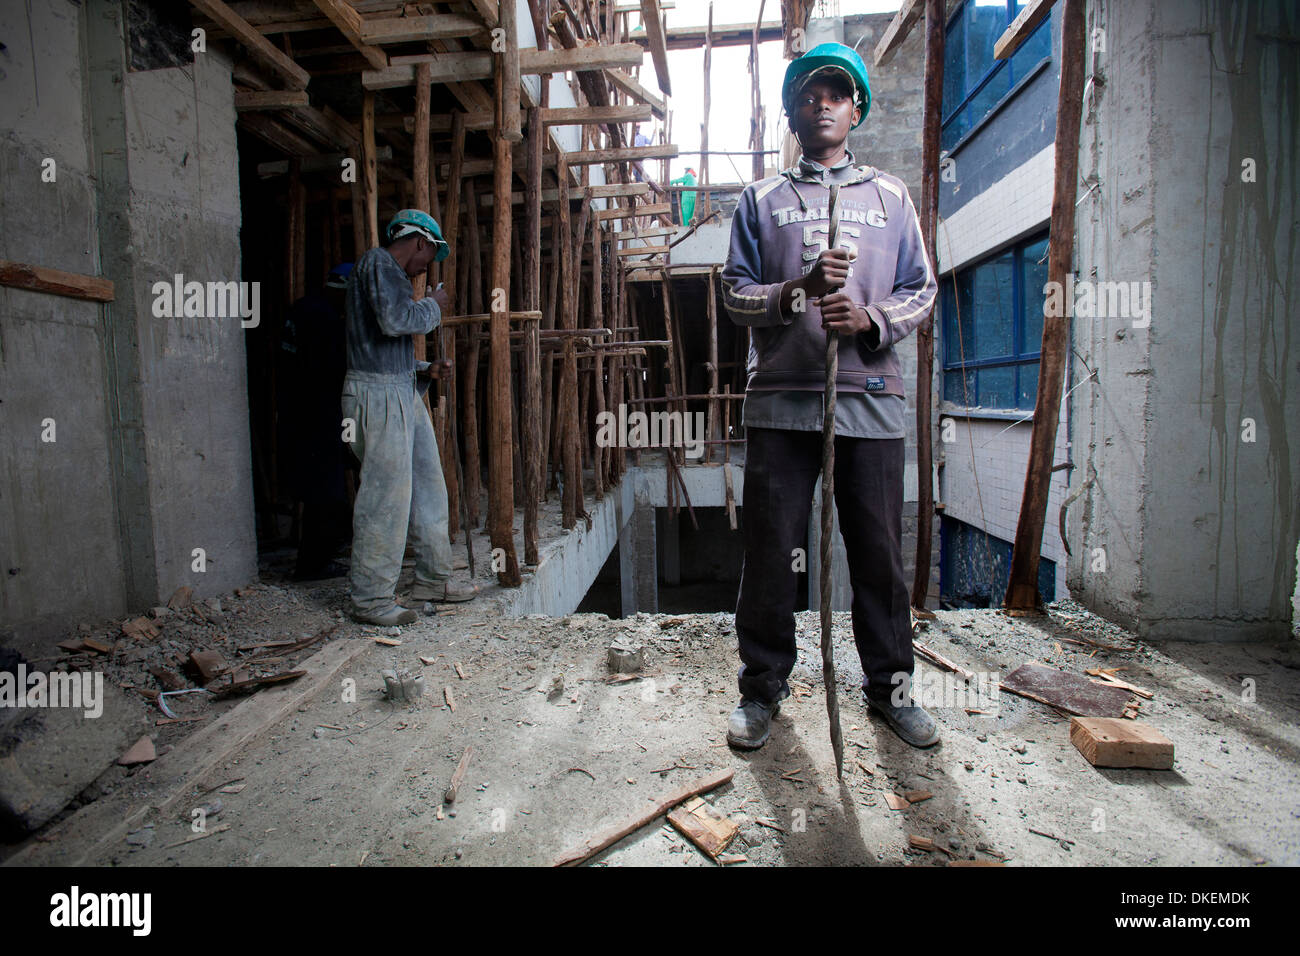 Construction worker on a high rise building site, Nairobi, Kenya - Stock Image